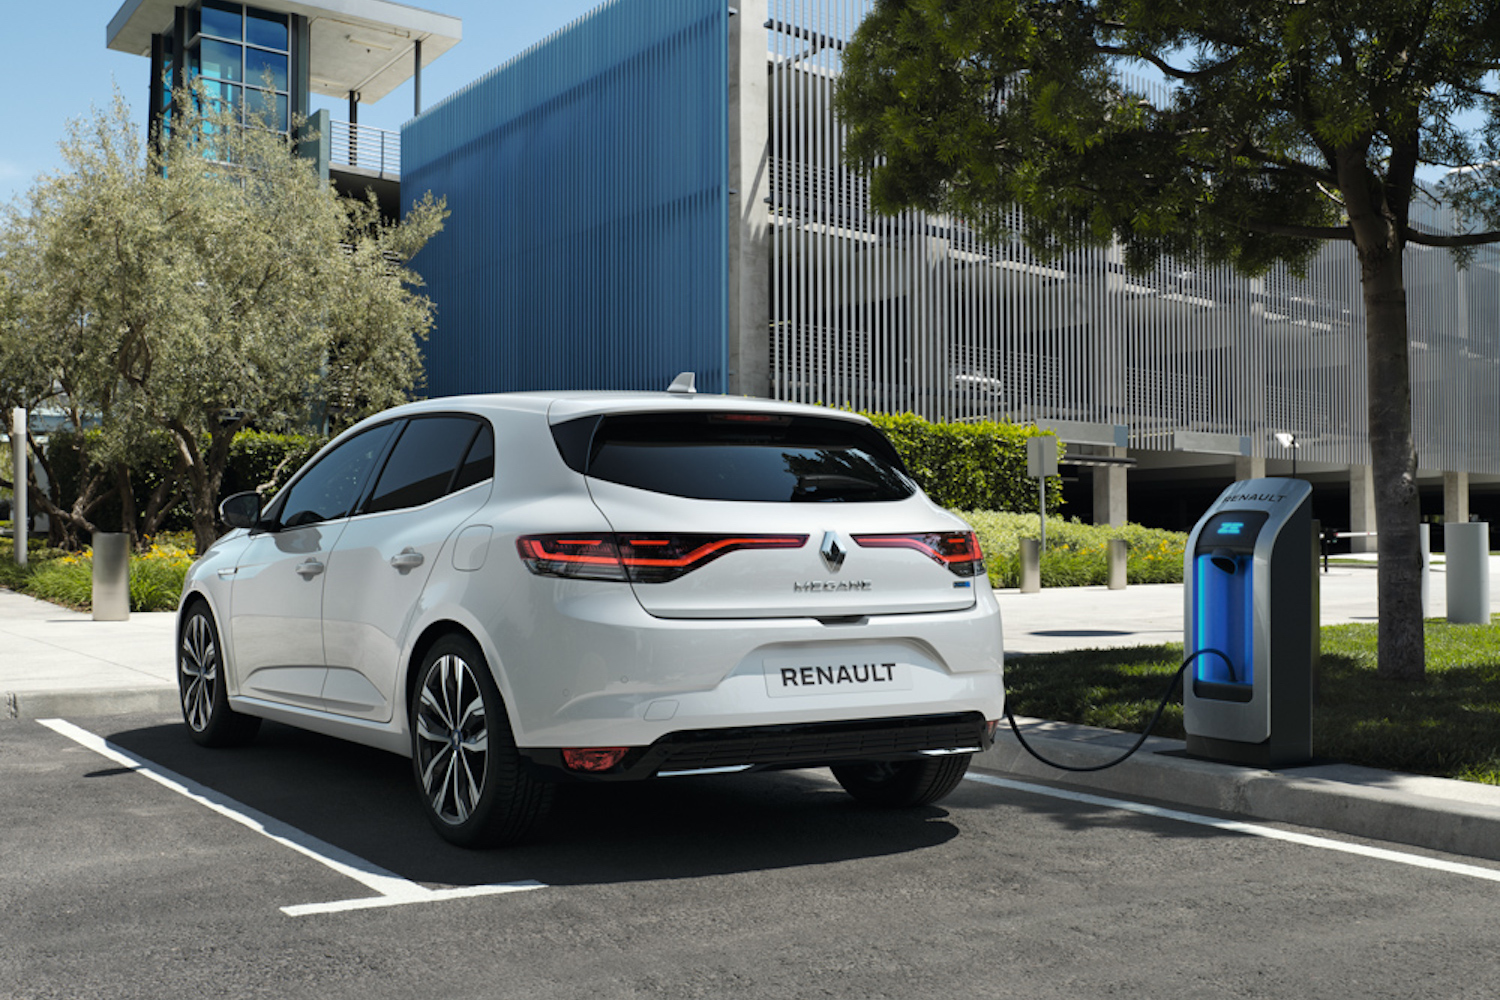 Renault expands its hybrid lineup